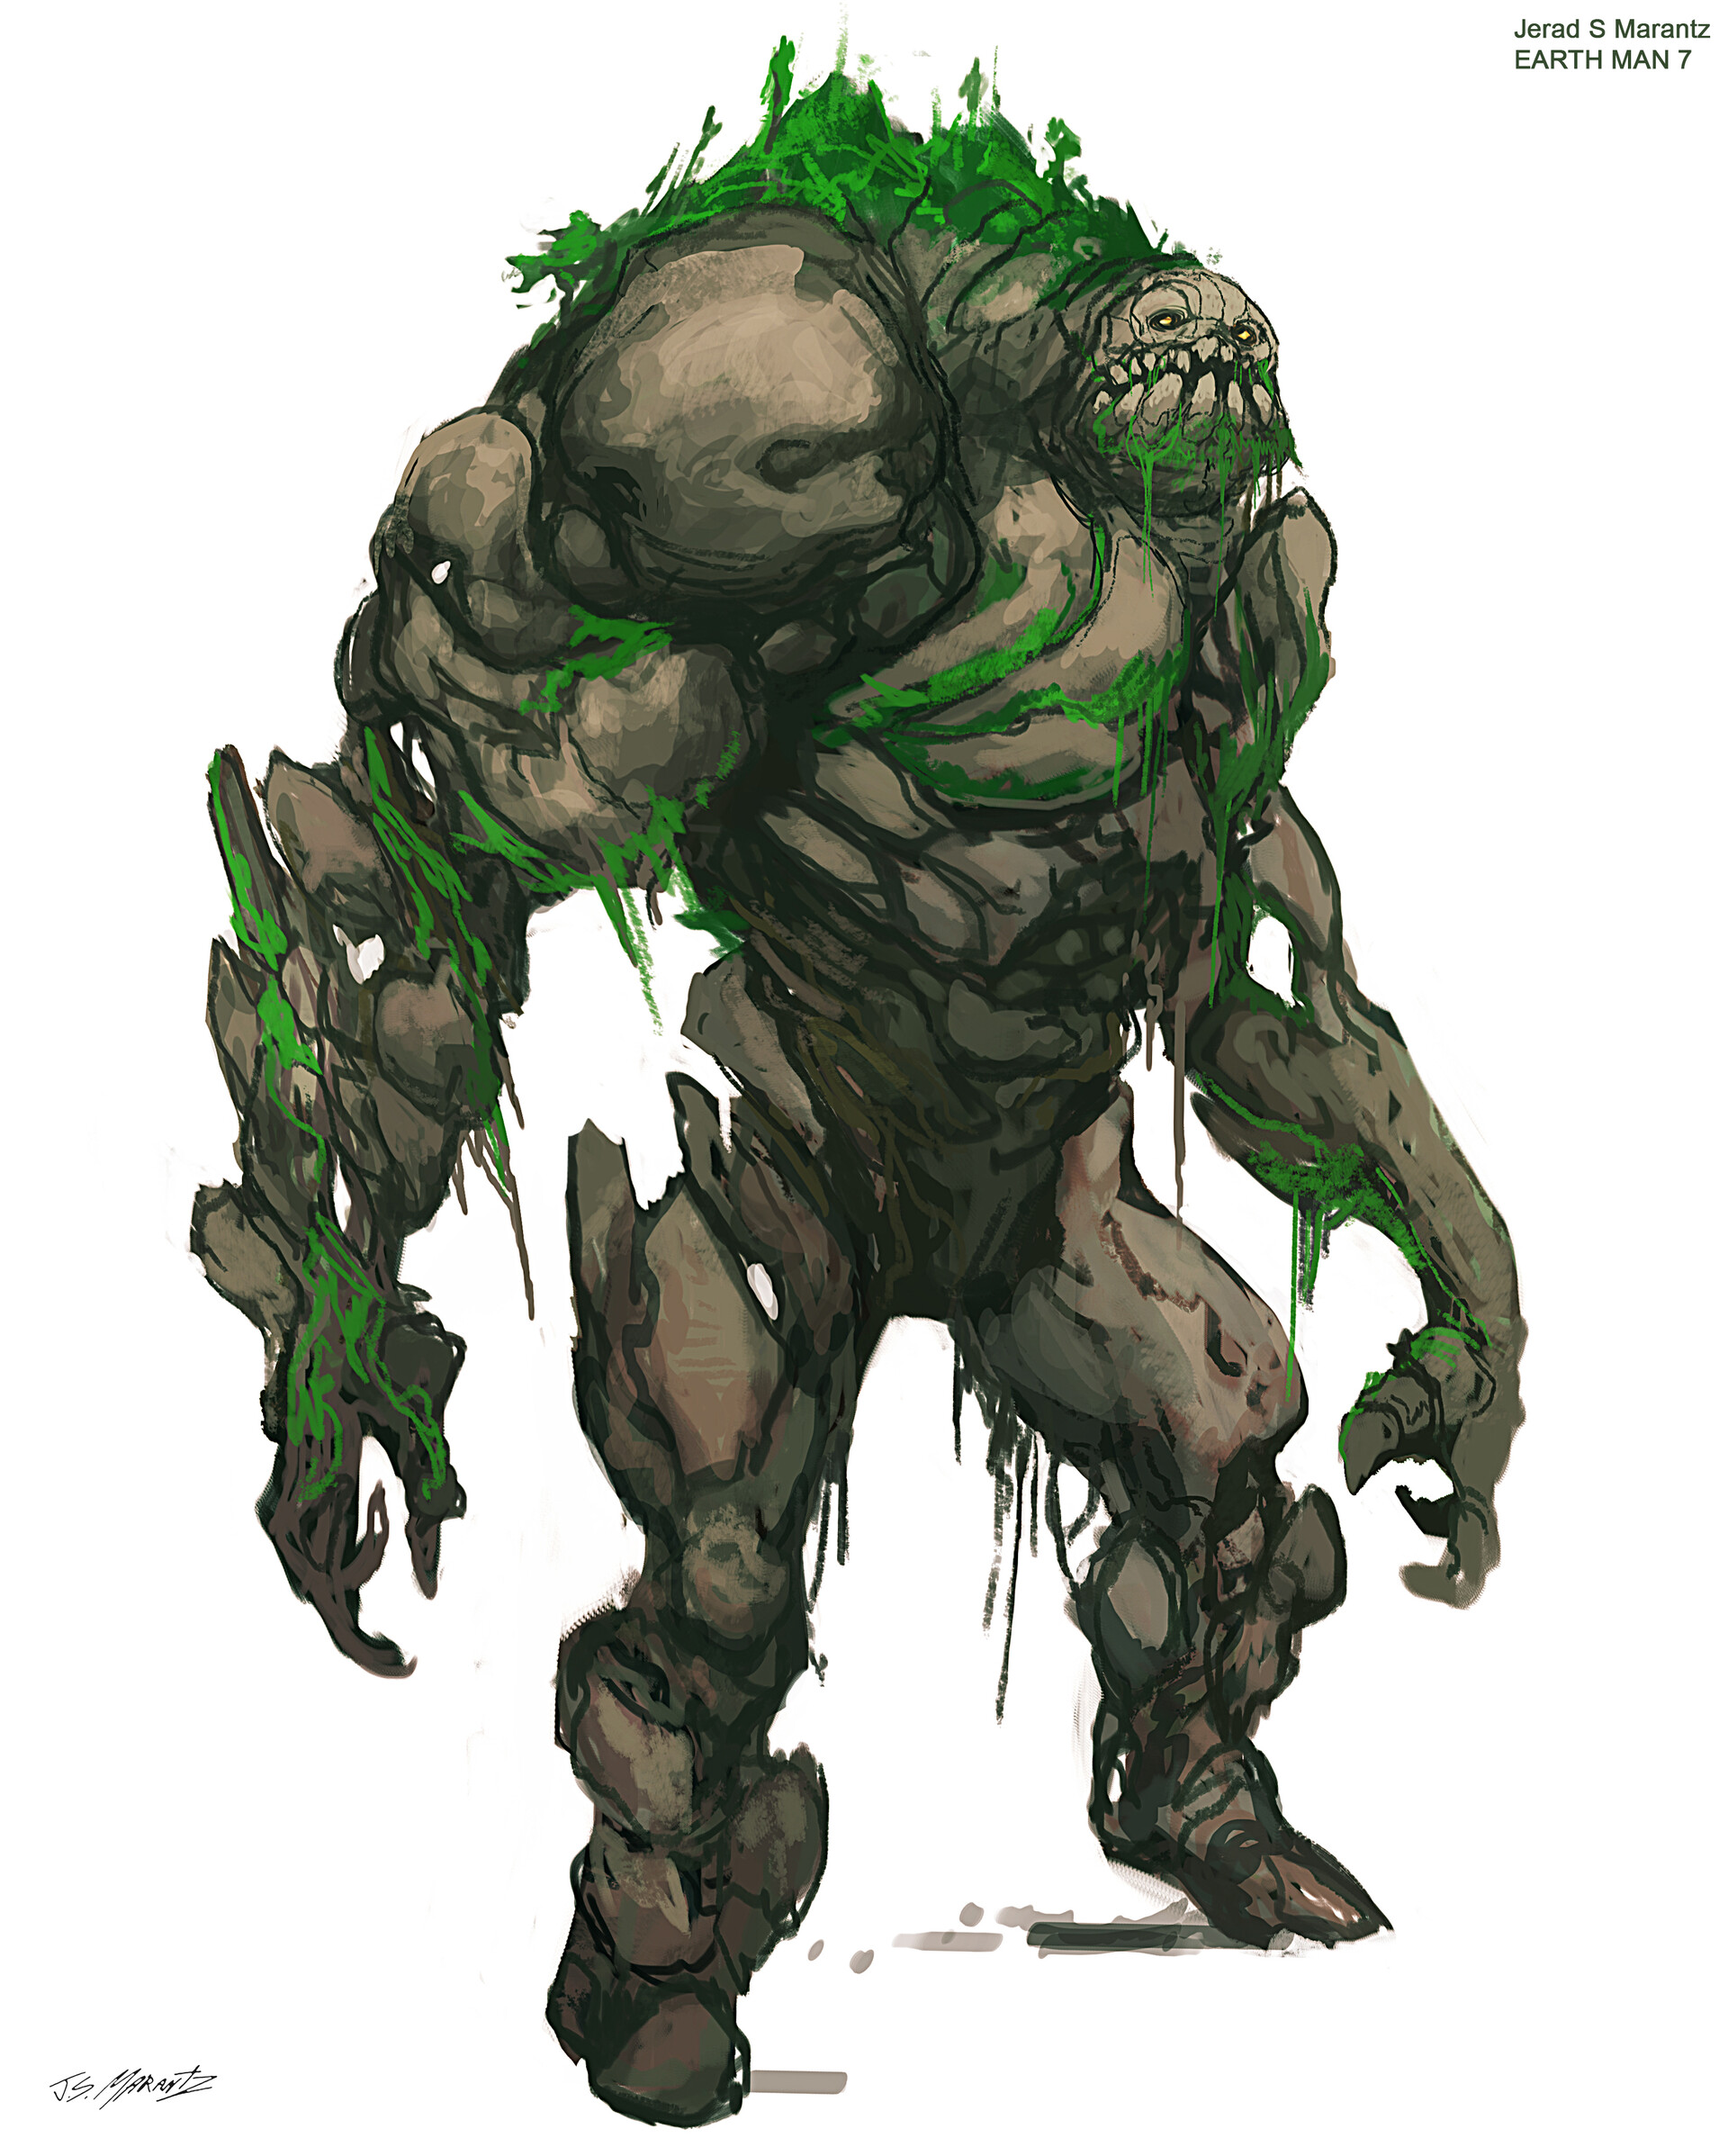 Jerx marantz earth man sketch 7